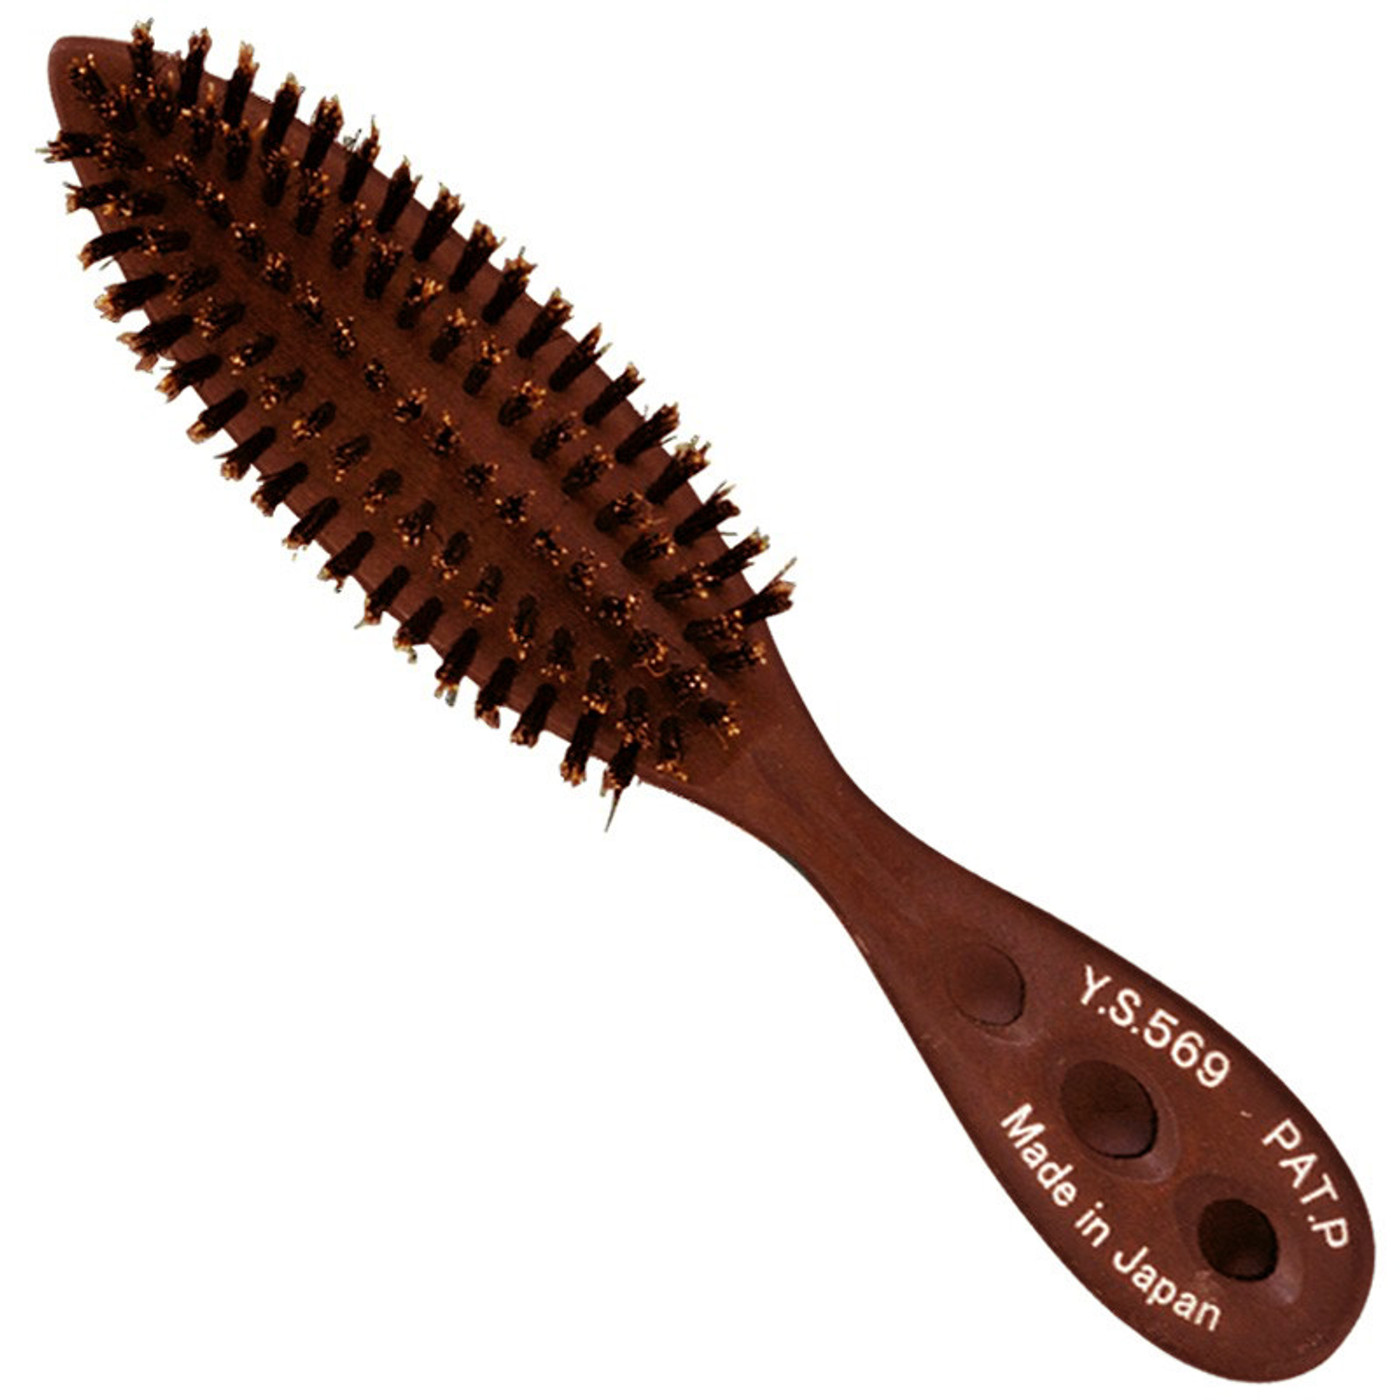 YS Park 569 Chignon Brush